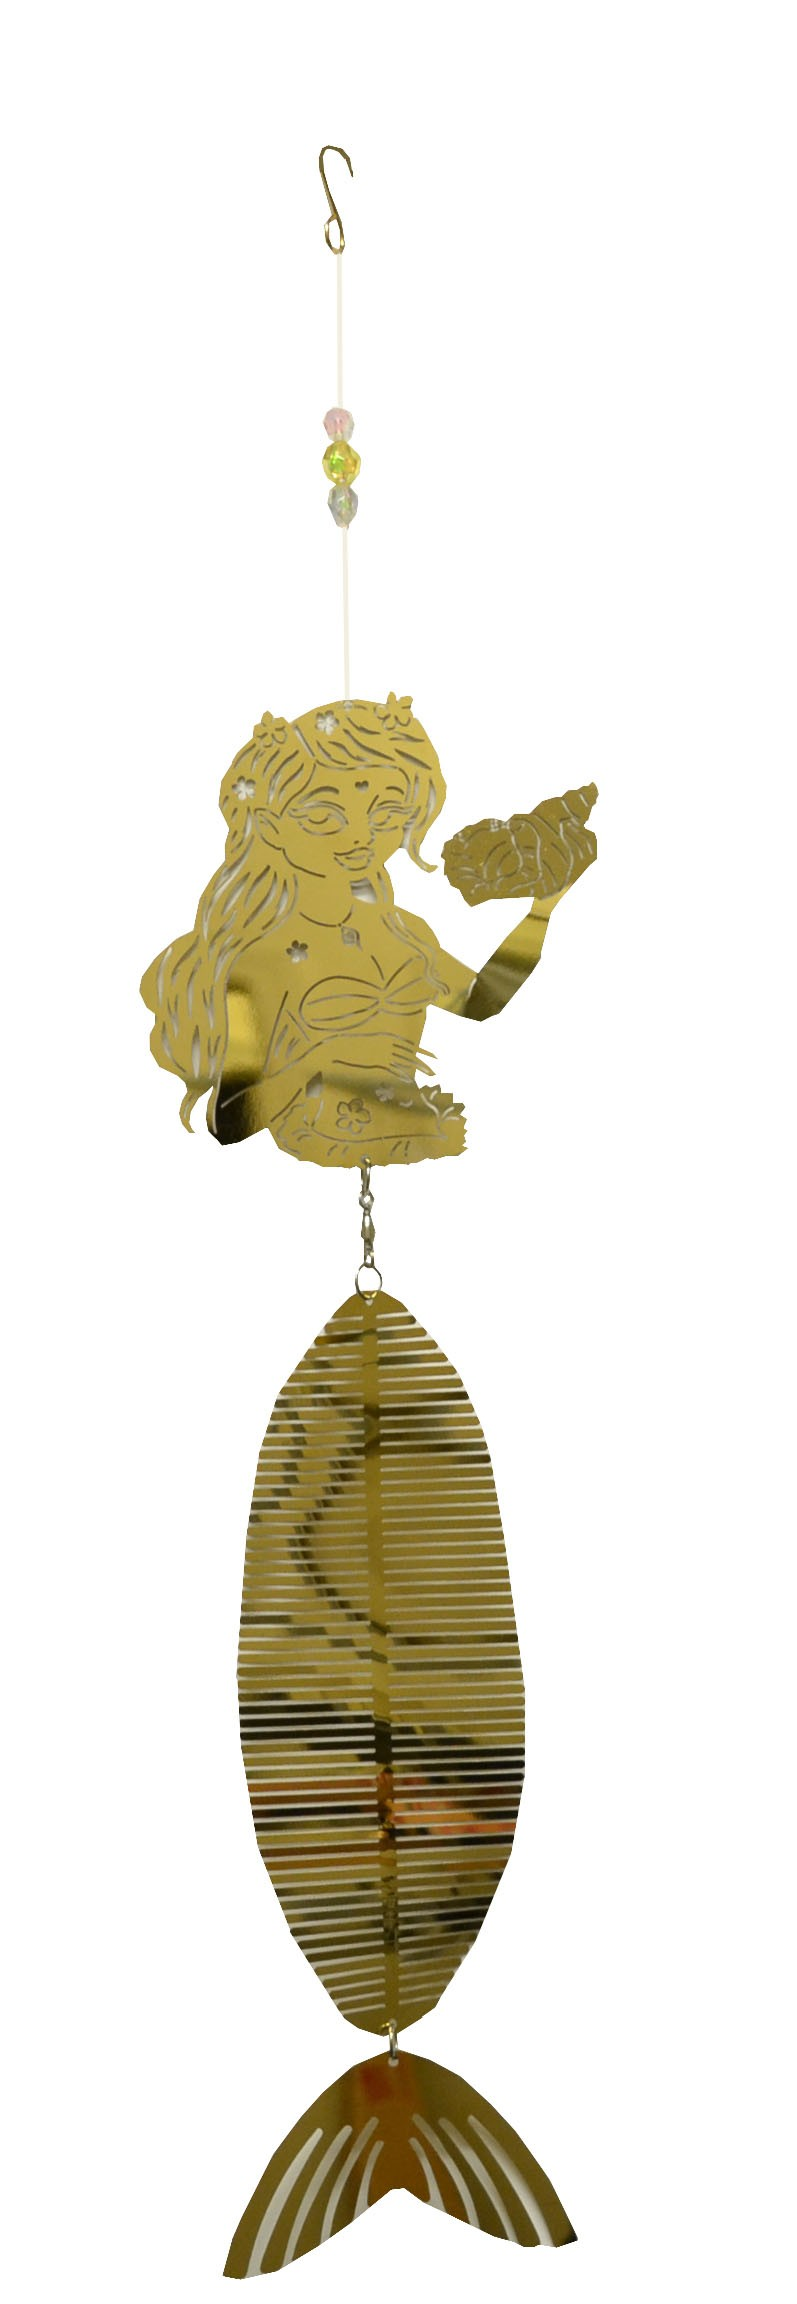 mermaid holding shell gold wind chime 711002